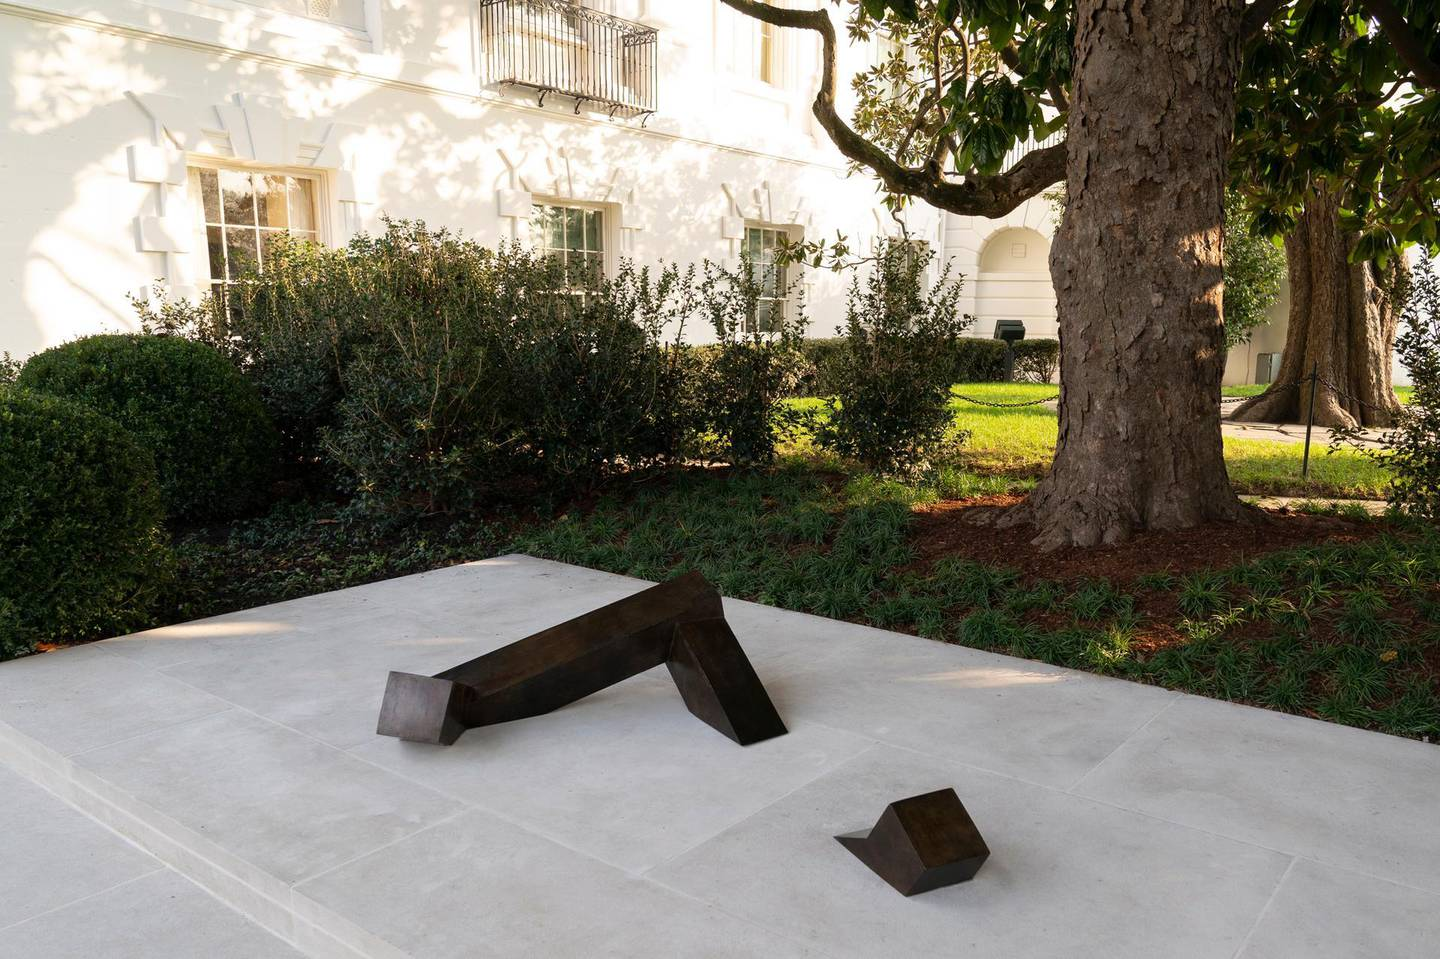 """epa08833211 The sculpture called """"Floor Frame,"""" created in 1962 by Isamu Noguchi seen in the White House Rose Garden in Washington, DC, USA,, 21 November 2020. Floor Frame was gifted to the White House by the White House Historical Association in March of 2020 and unveiled on November 20, 2020.  EPA/Chris Kleponis / POOL"""